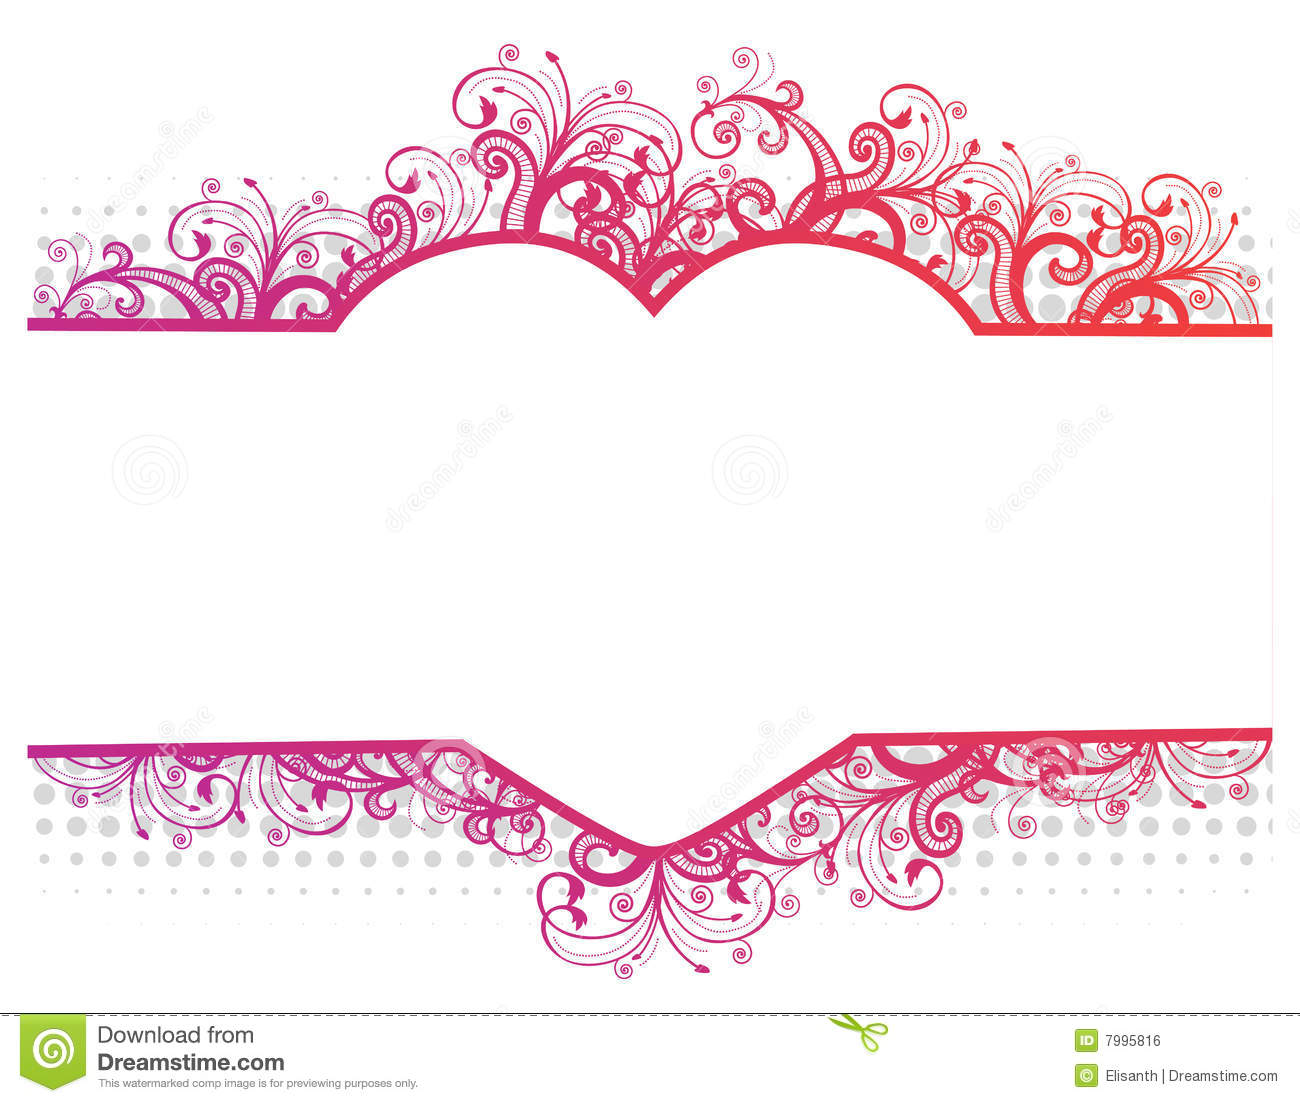 Free Stock Image  Vector illustration of a floral border with heartVector Floral Border